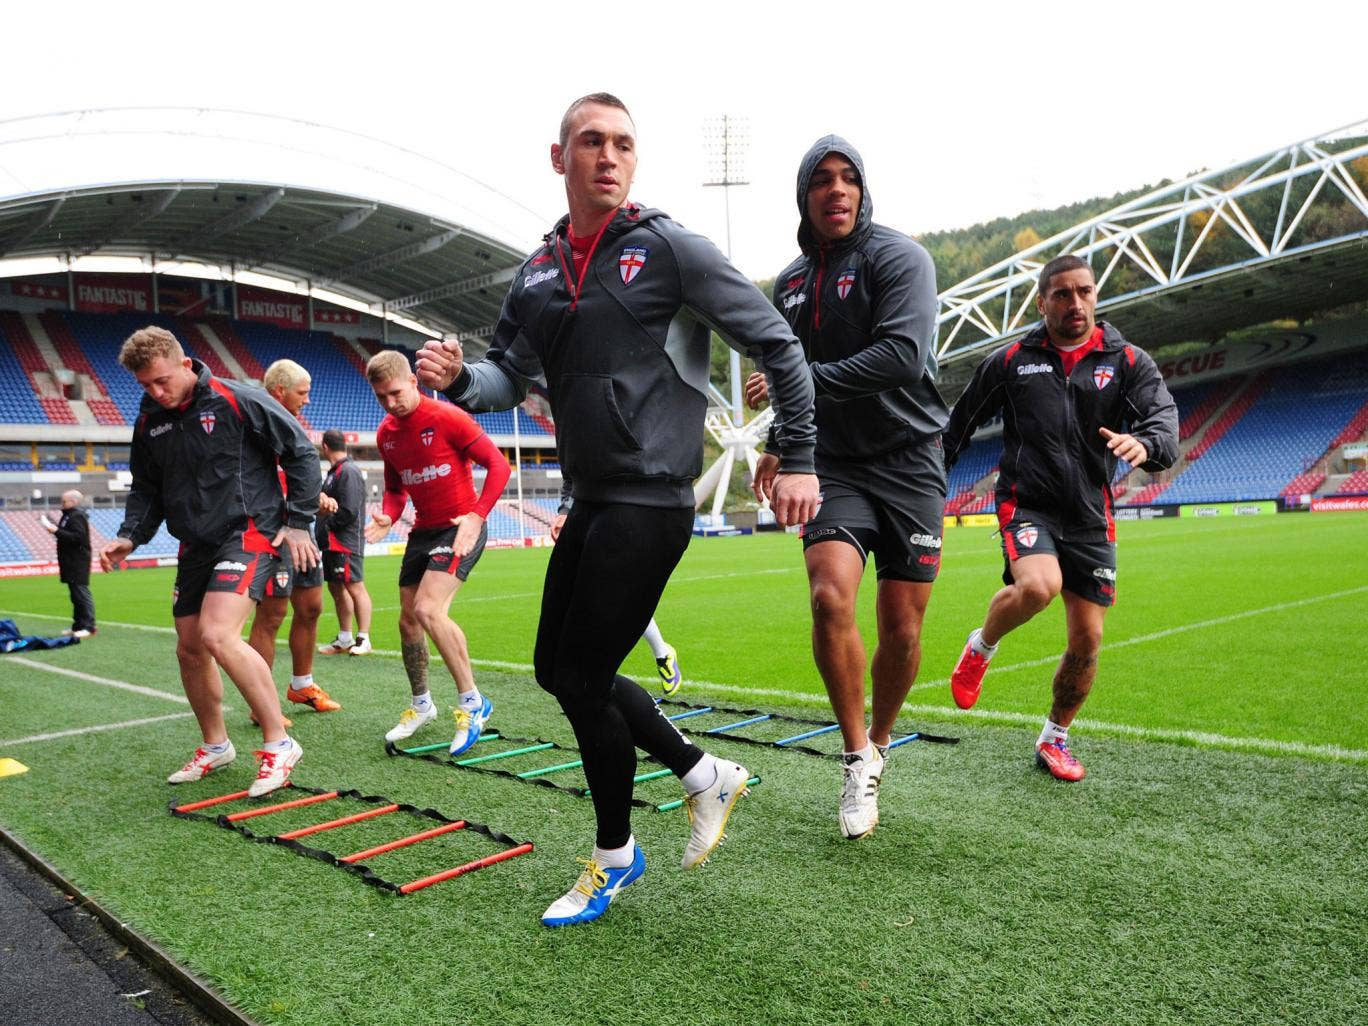 Kevin Sinfield (front centre), Leroy Cudjoe (front right) and Rangi Chase (right) during the Captain's Run at the John Smith's Stadium, Huddersfield